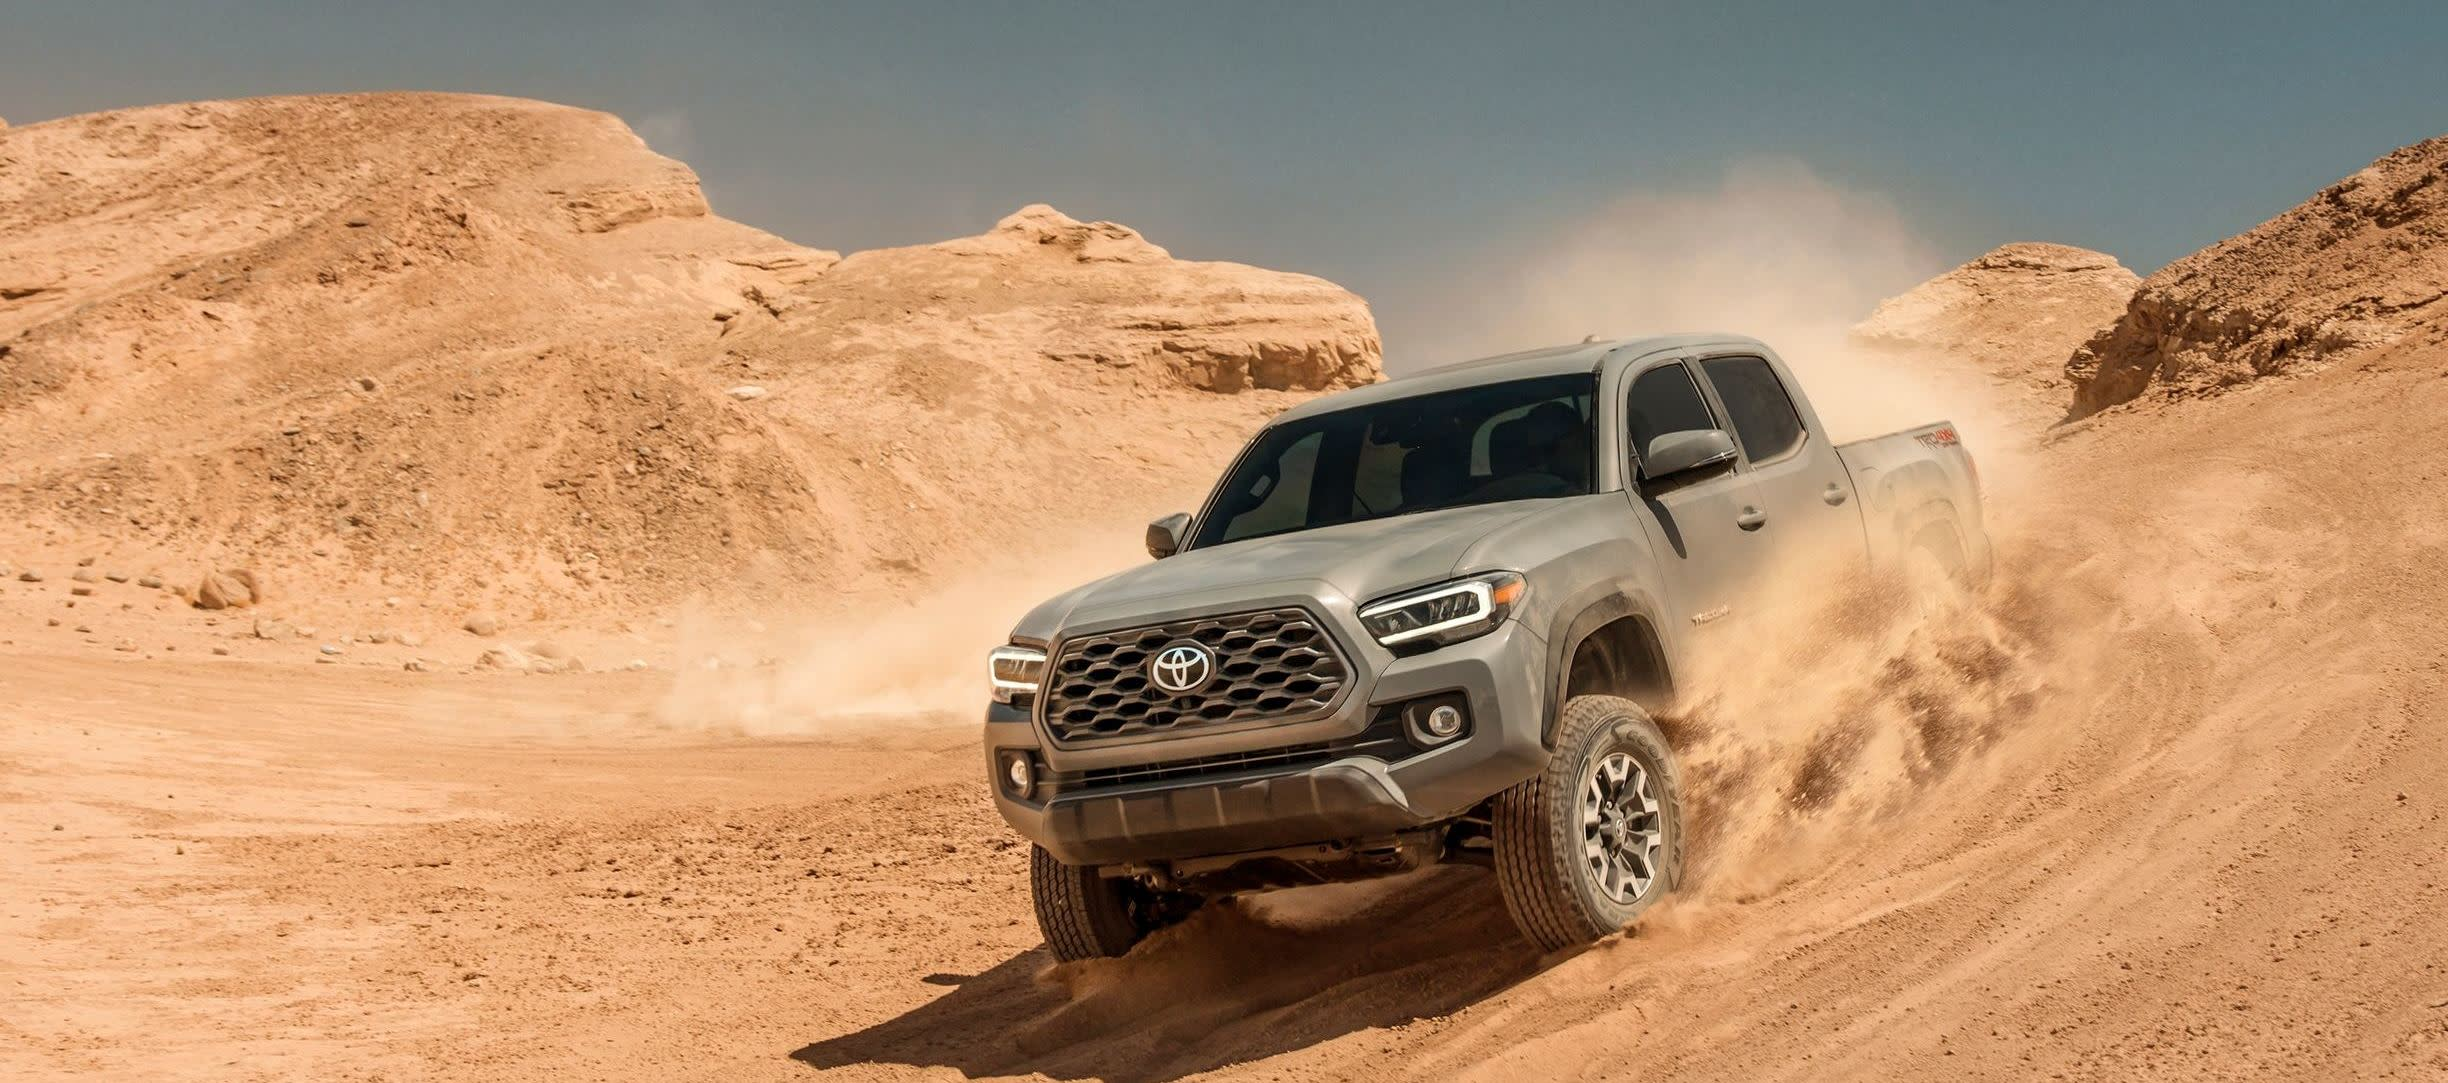 2020 Toyota Tacoma for Sale in Kansas City, MO, 64114